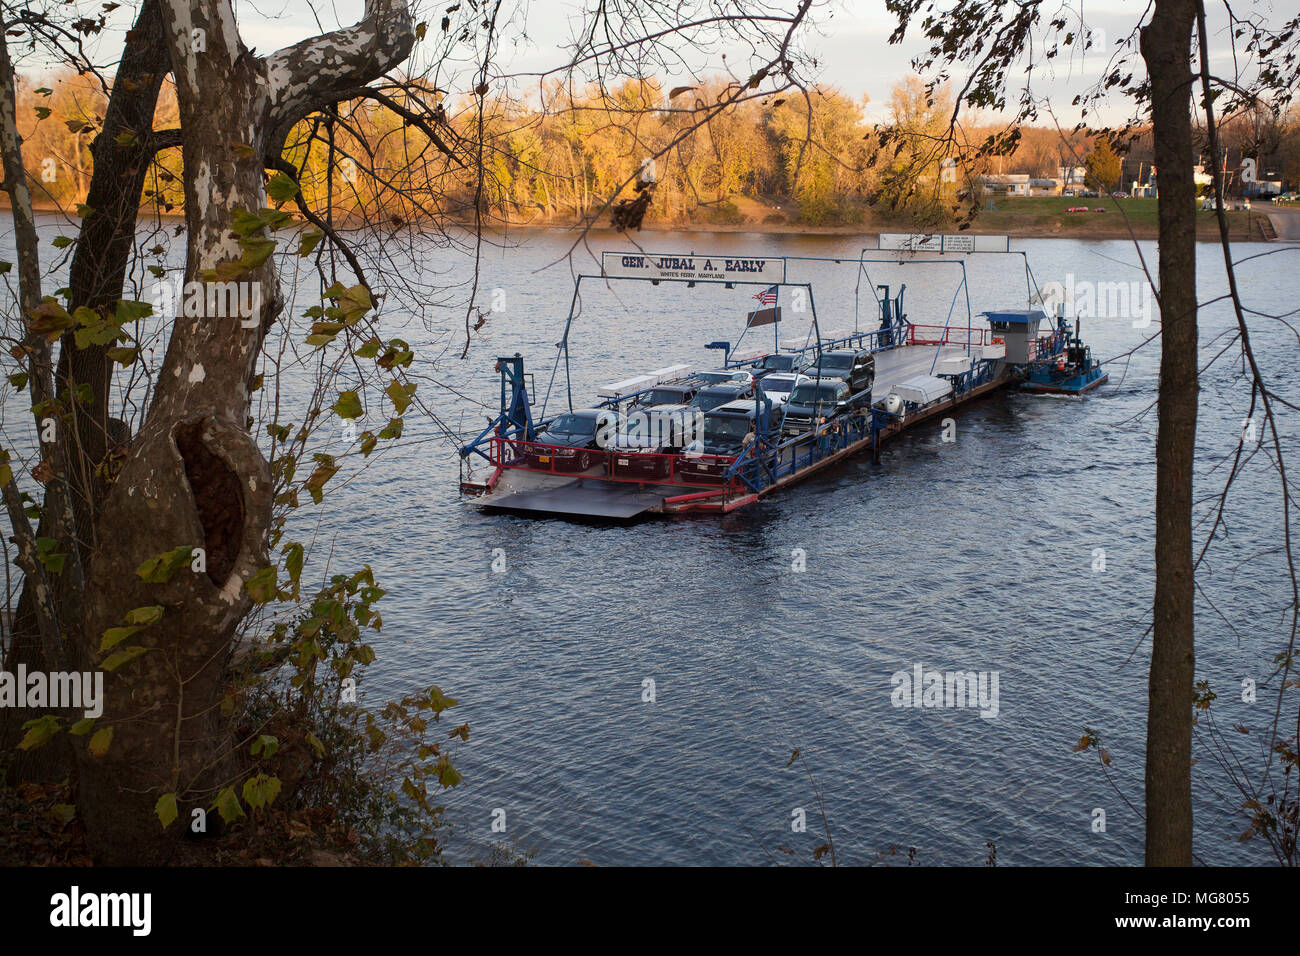 Historic White's ferry in Poolesville Maryland crossing the Potomac River. The ferry follows a wire cable to the other side of the river - Stock Image